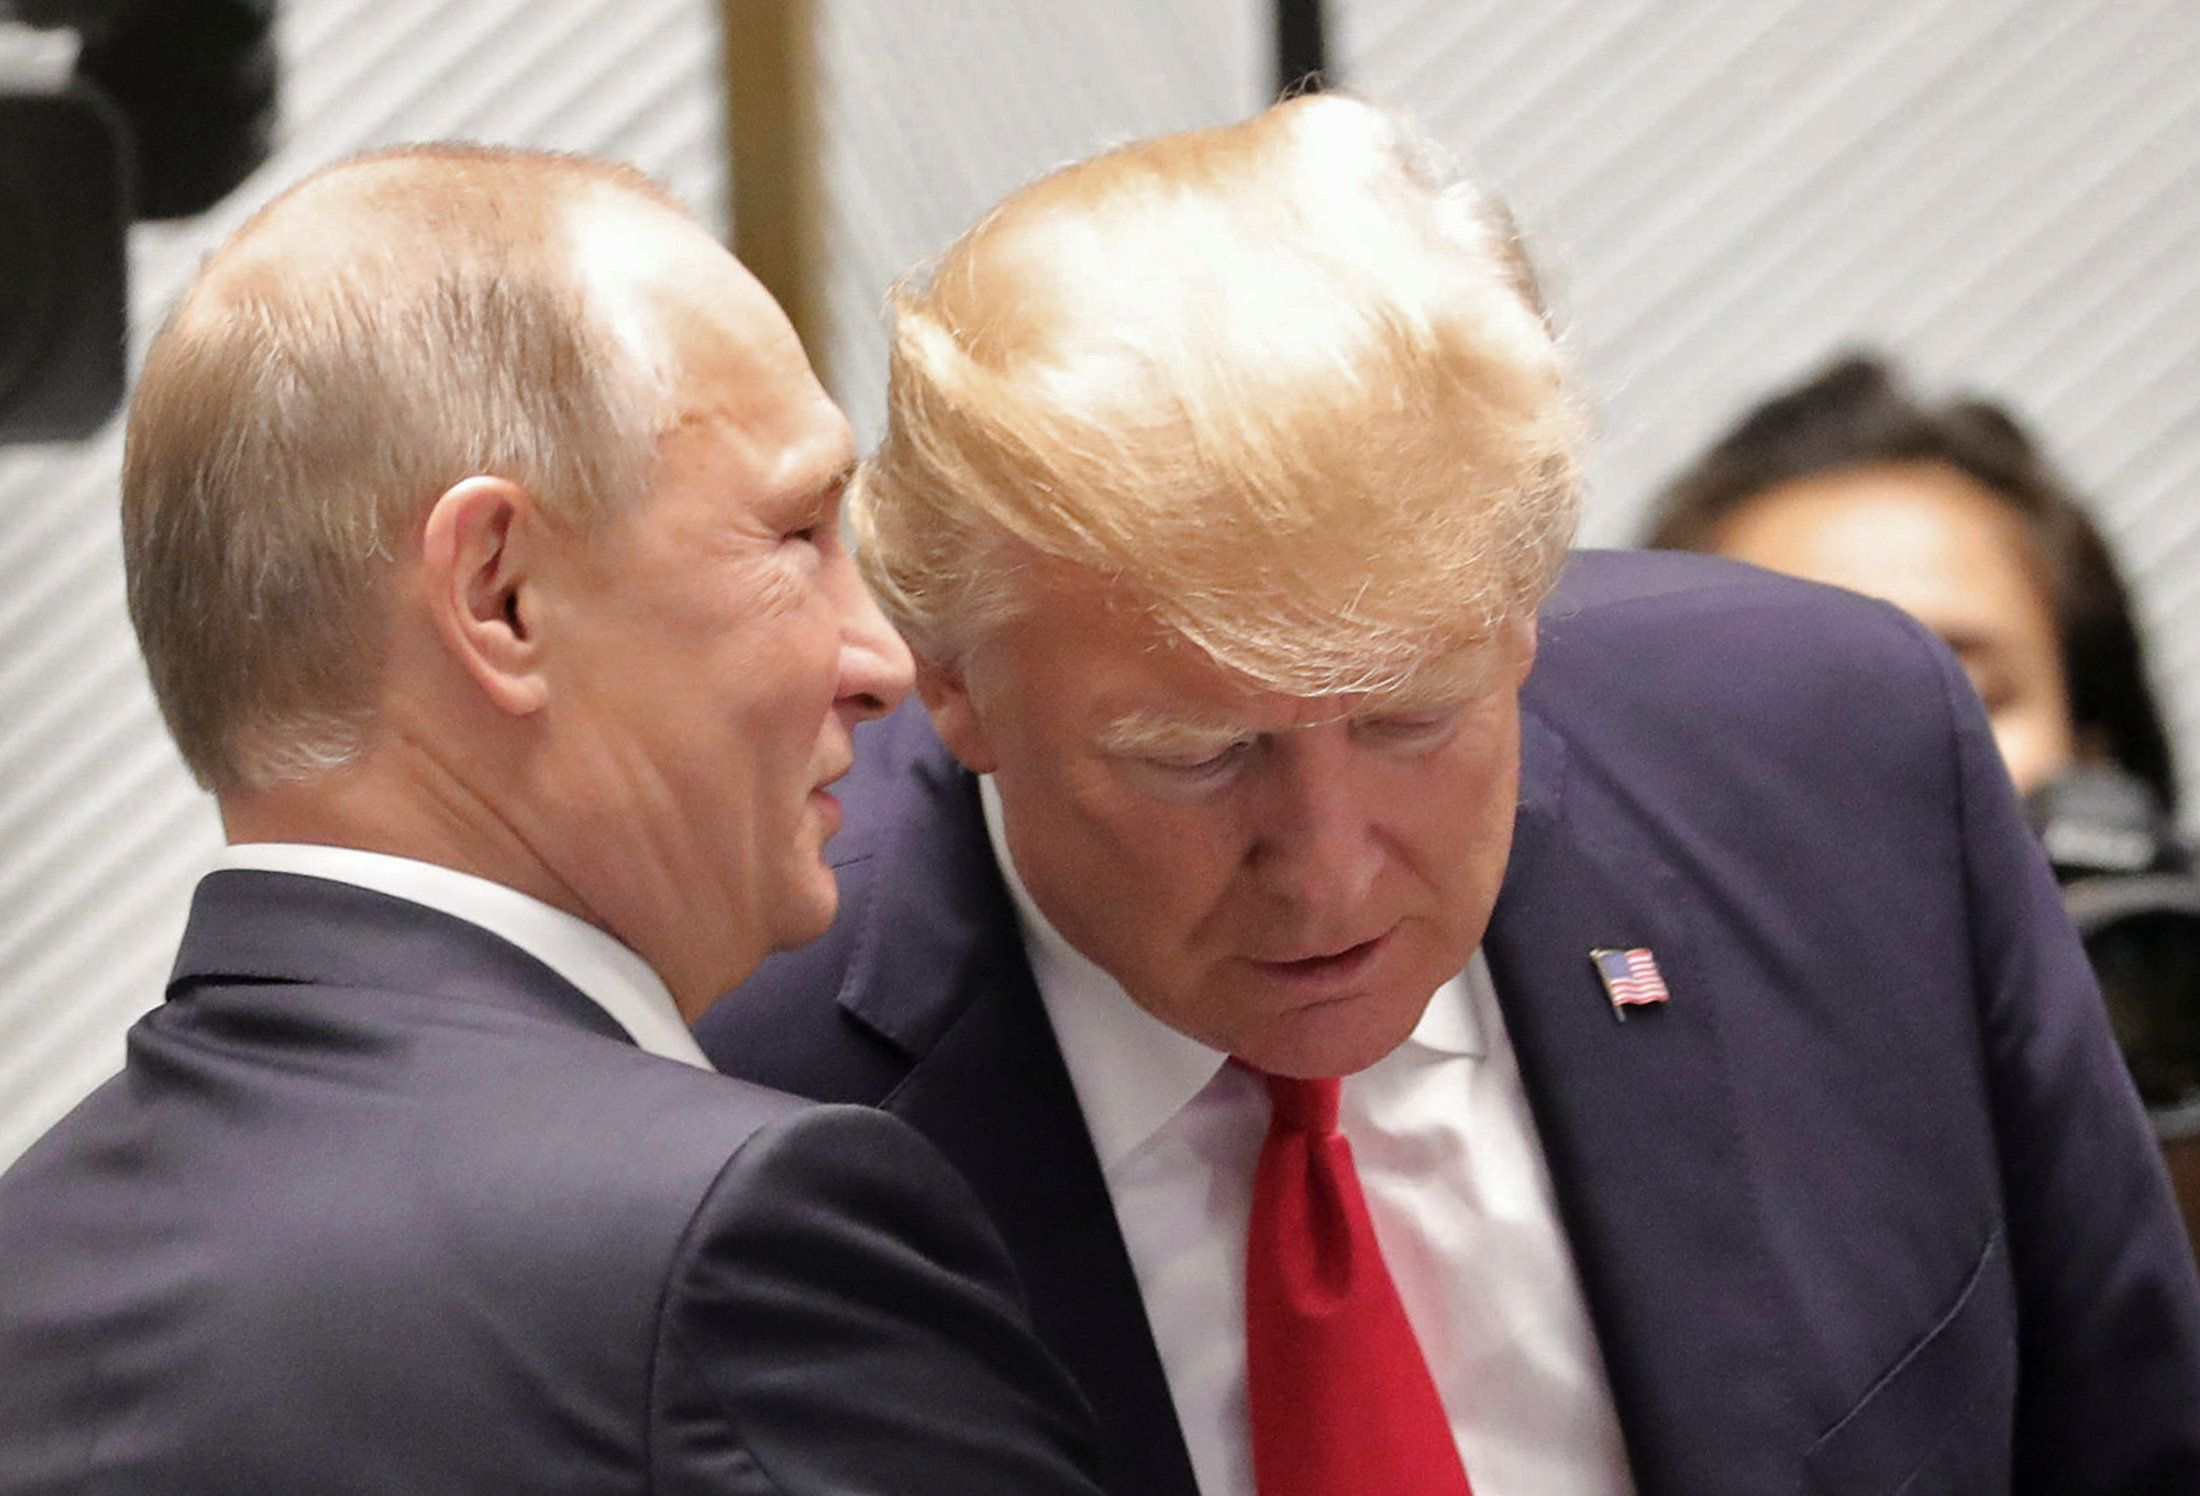 U.S. President Donald Trump and Russian President Vladimir Putin talk before a session of the APEC summit in Danang, Vietnam November 11, 2017. Sputnik/Mikhail Klimentyev/Kremlin via REUTERS ATTENTION EDITORS - THIS IMAGE WAS PROVIDED BY A THIRD PARTY.